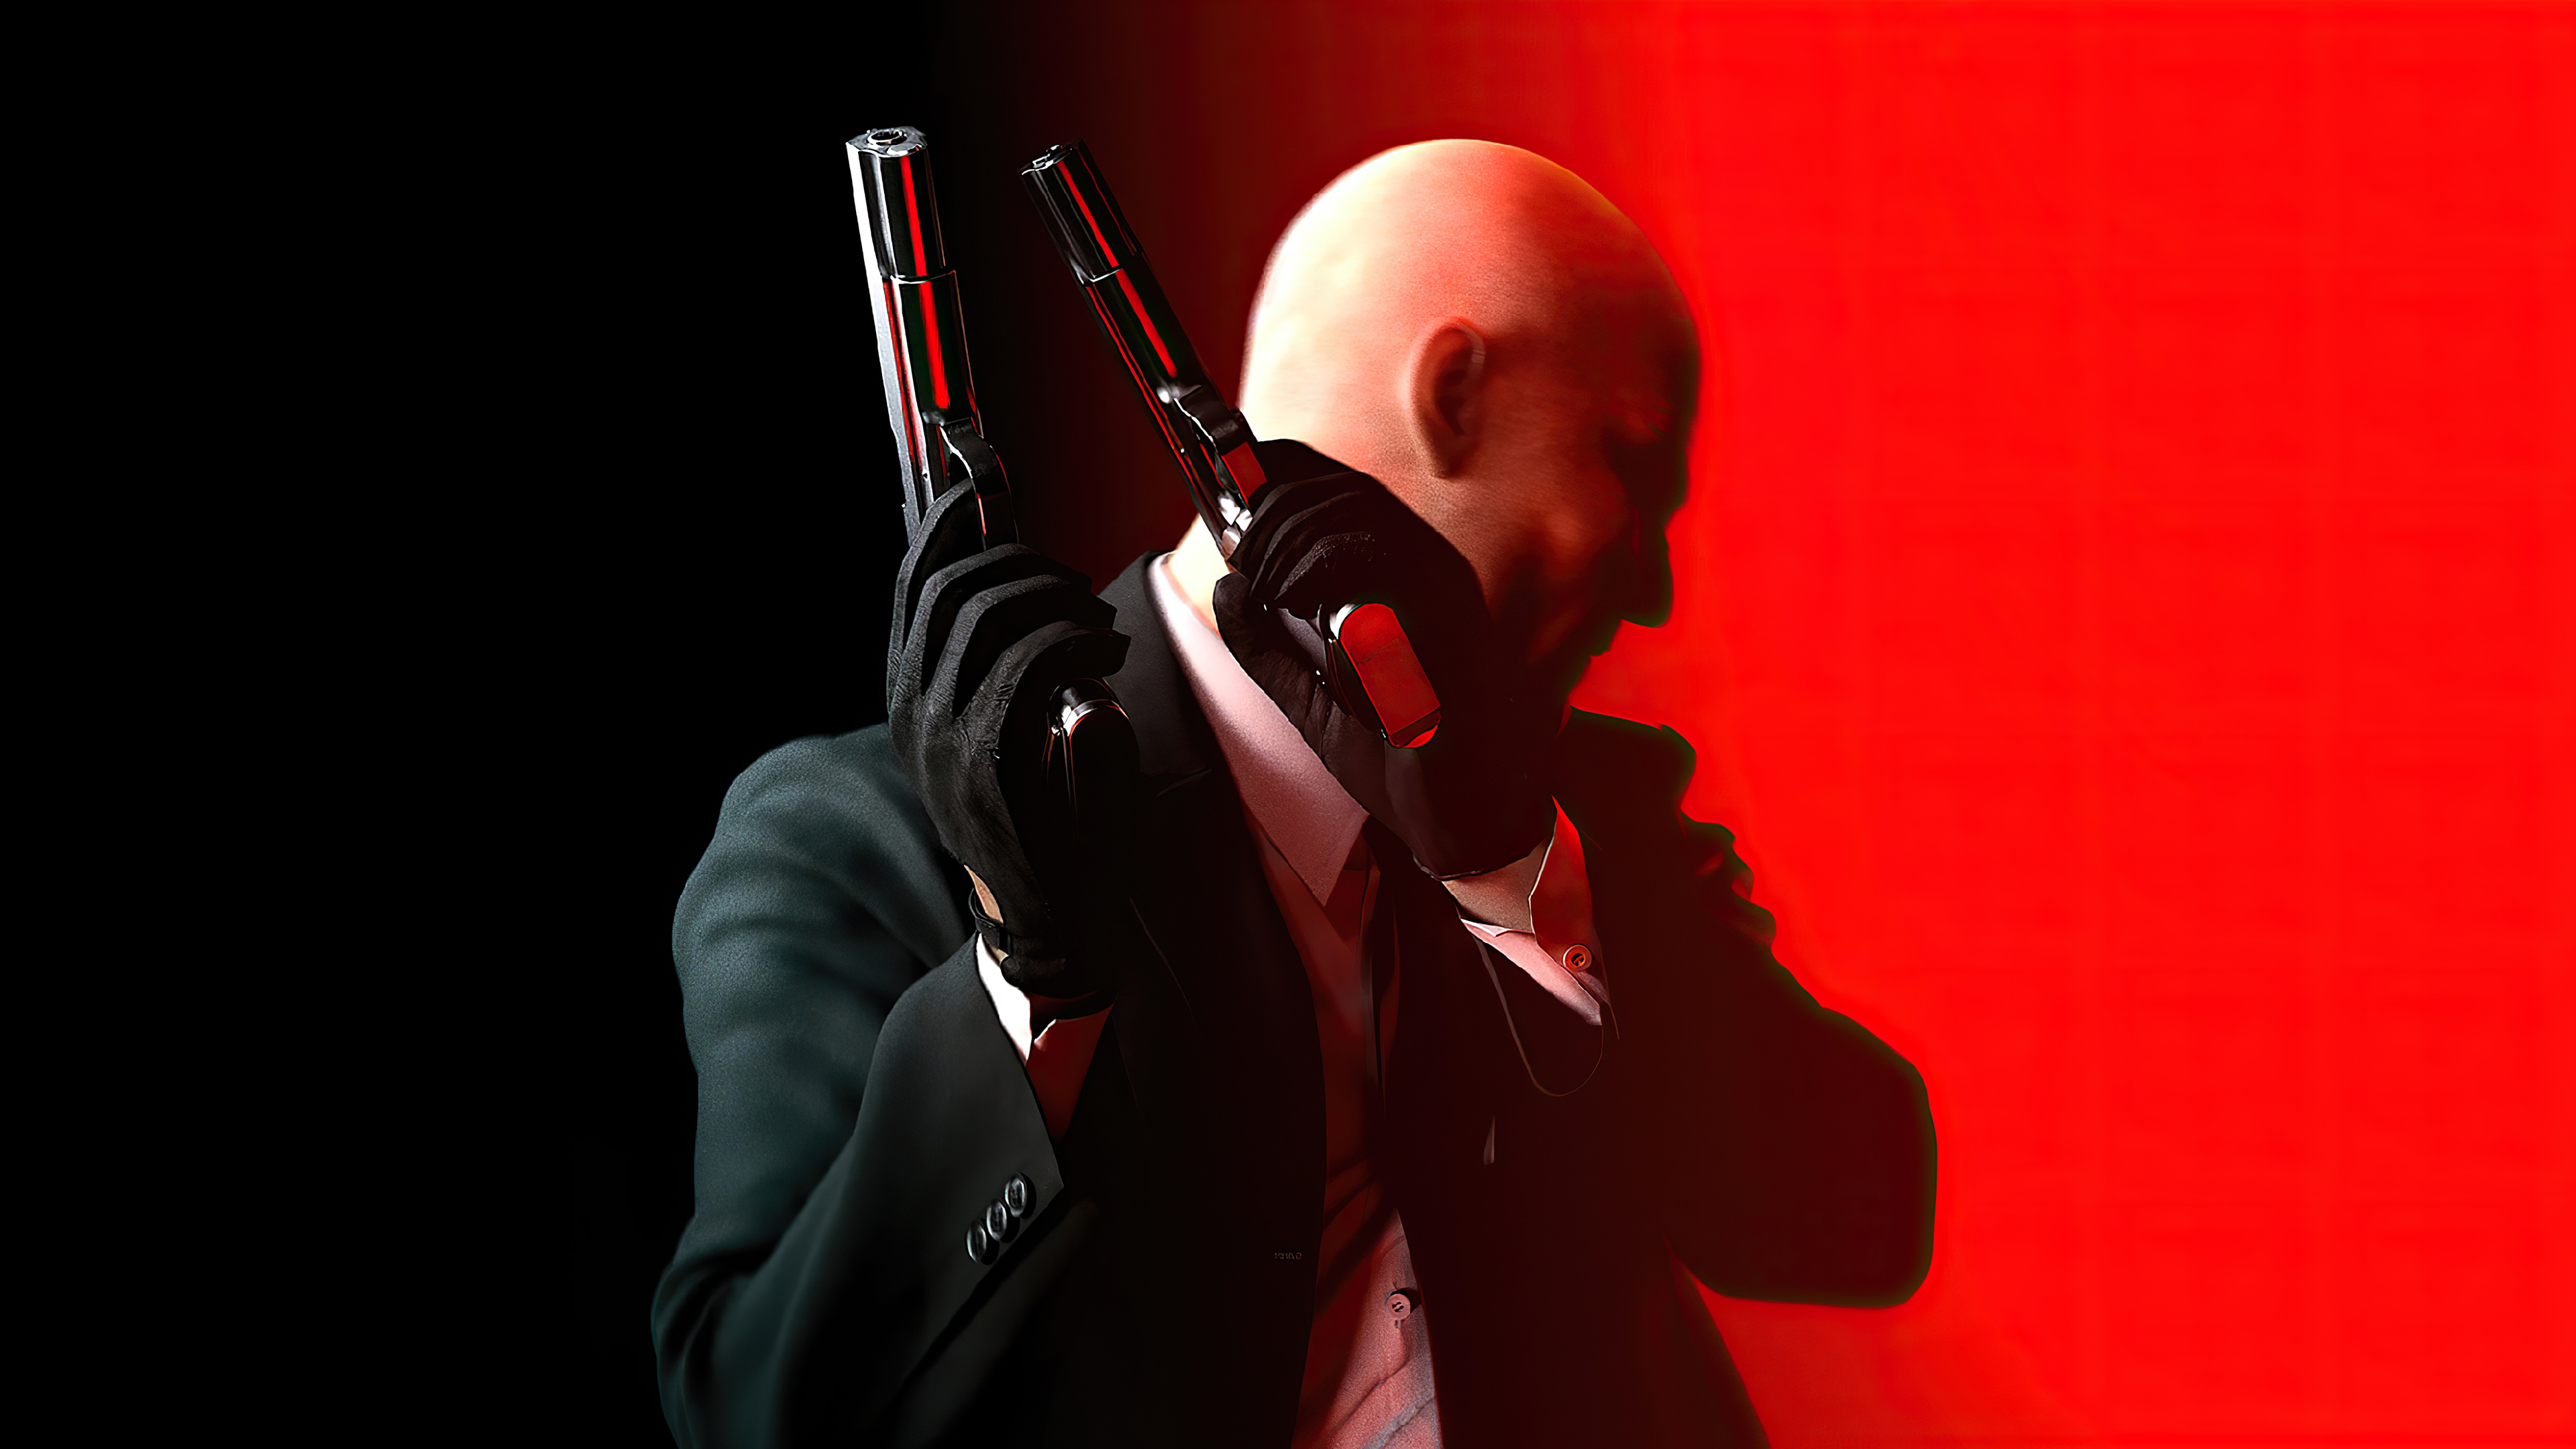 Hitman Absolution 4k Hd Games 4k Wallpapers Images Backgrounds